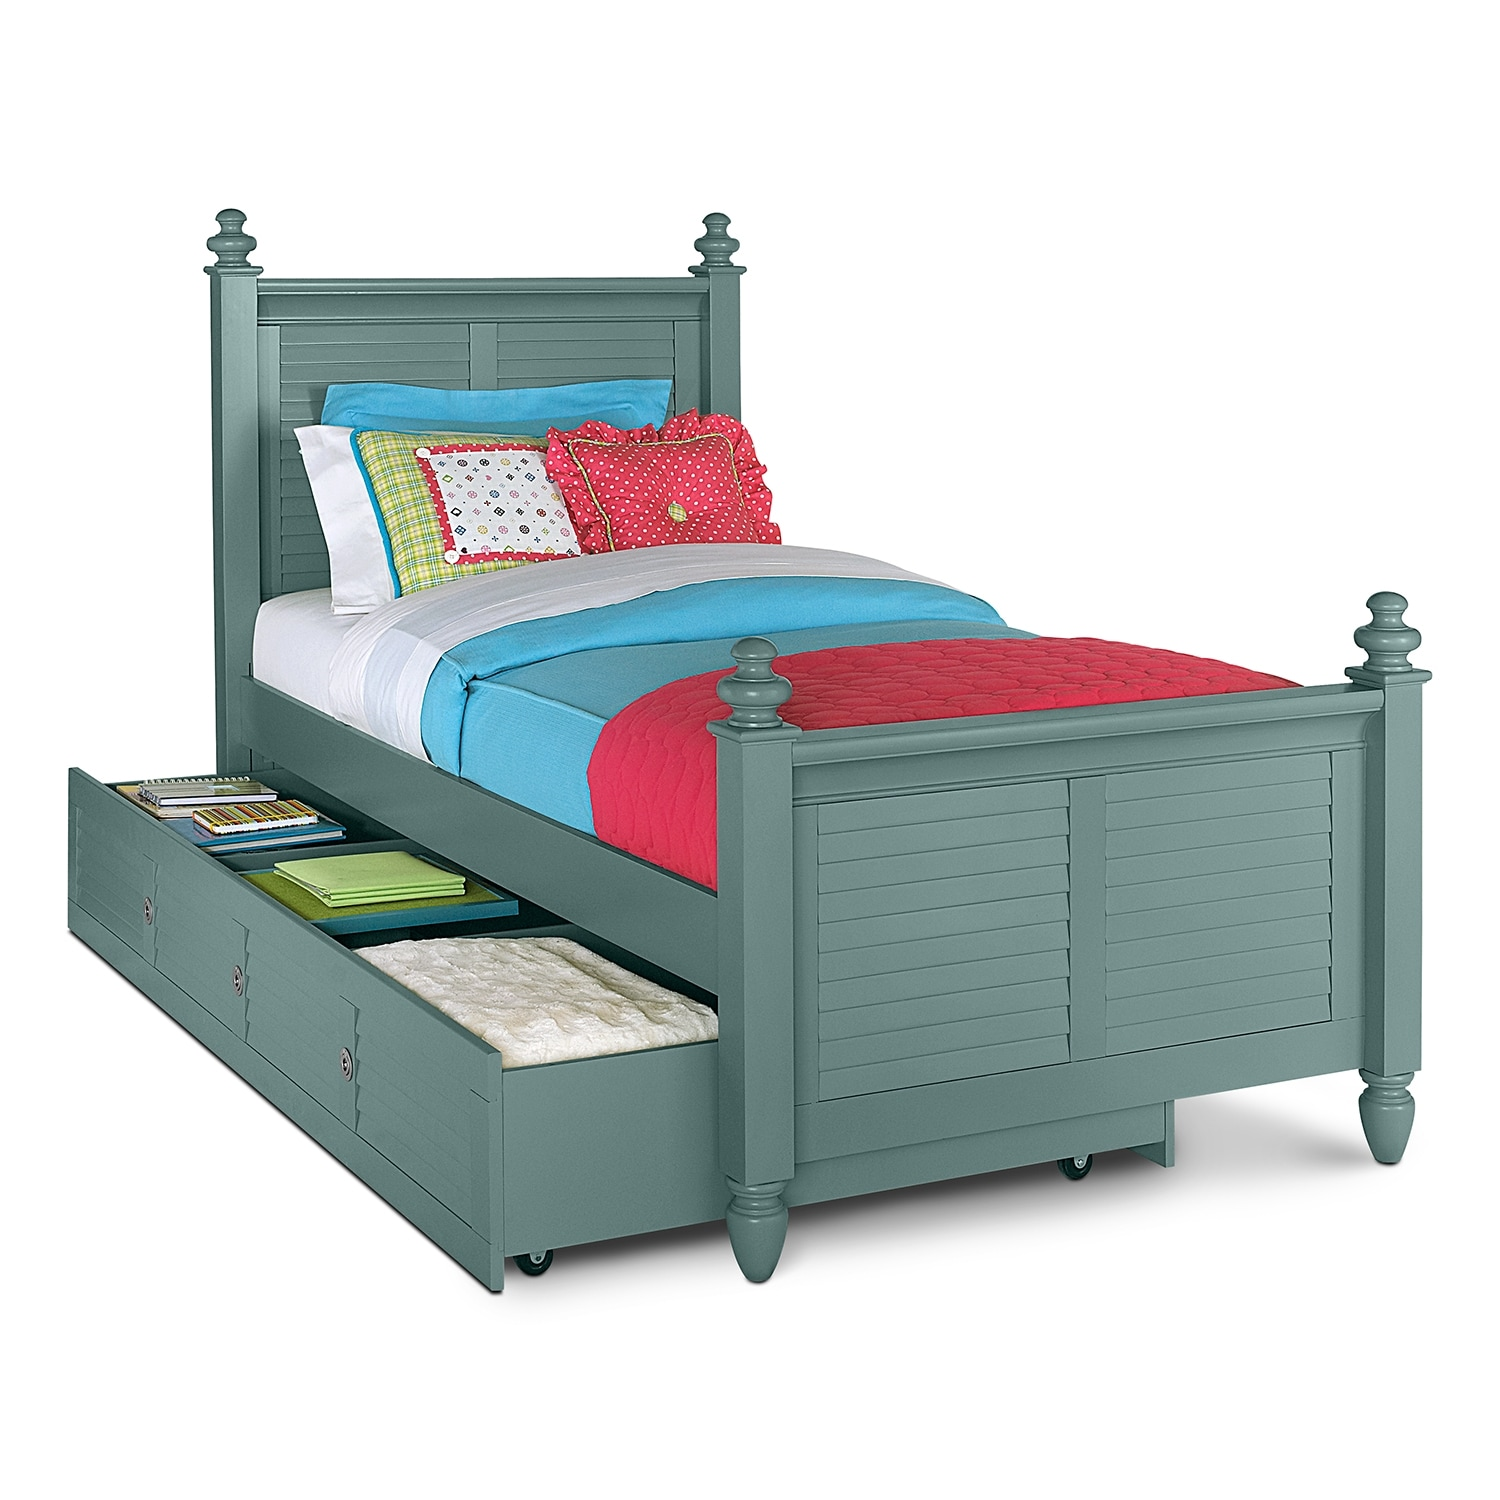 Kids Furniture - Mayflower Blue Full Bed with Trundle